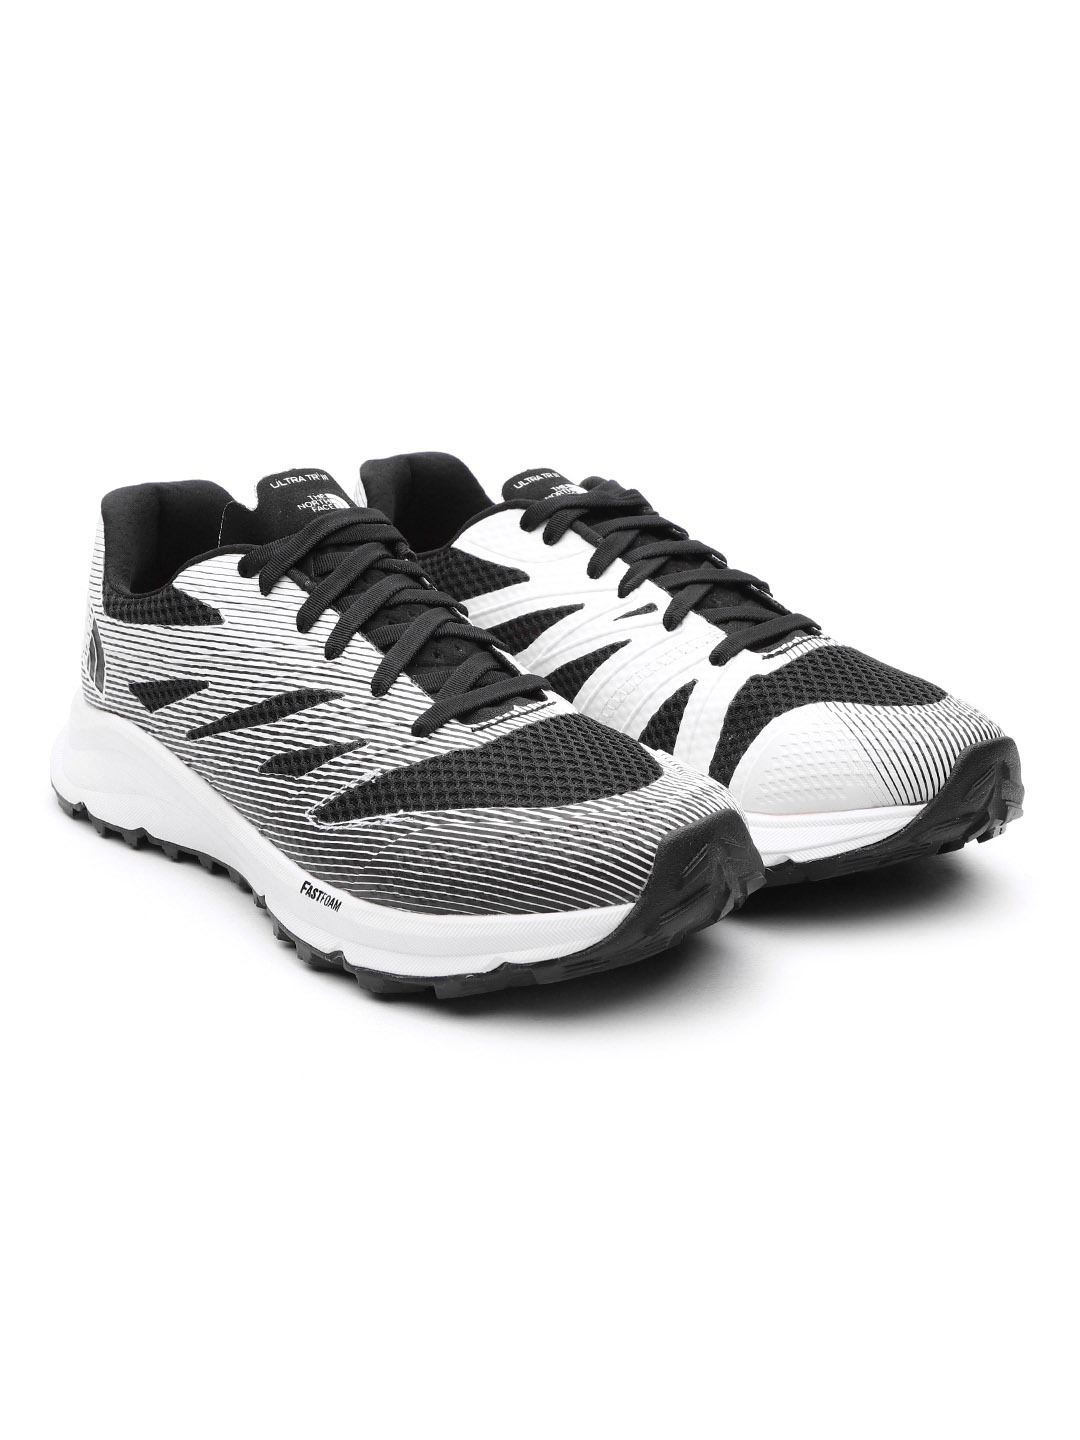 Black & White Striped Ultra TR III Running Shoes